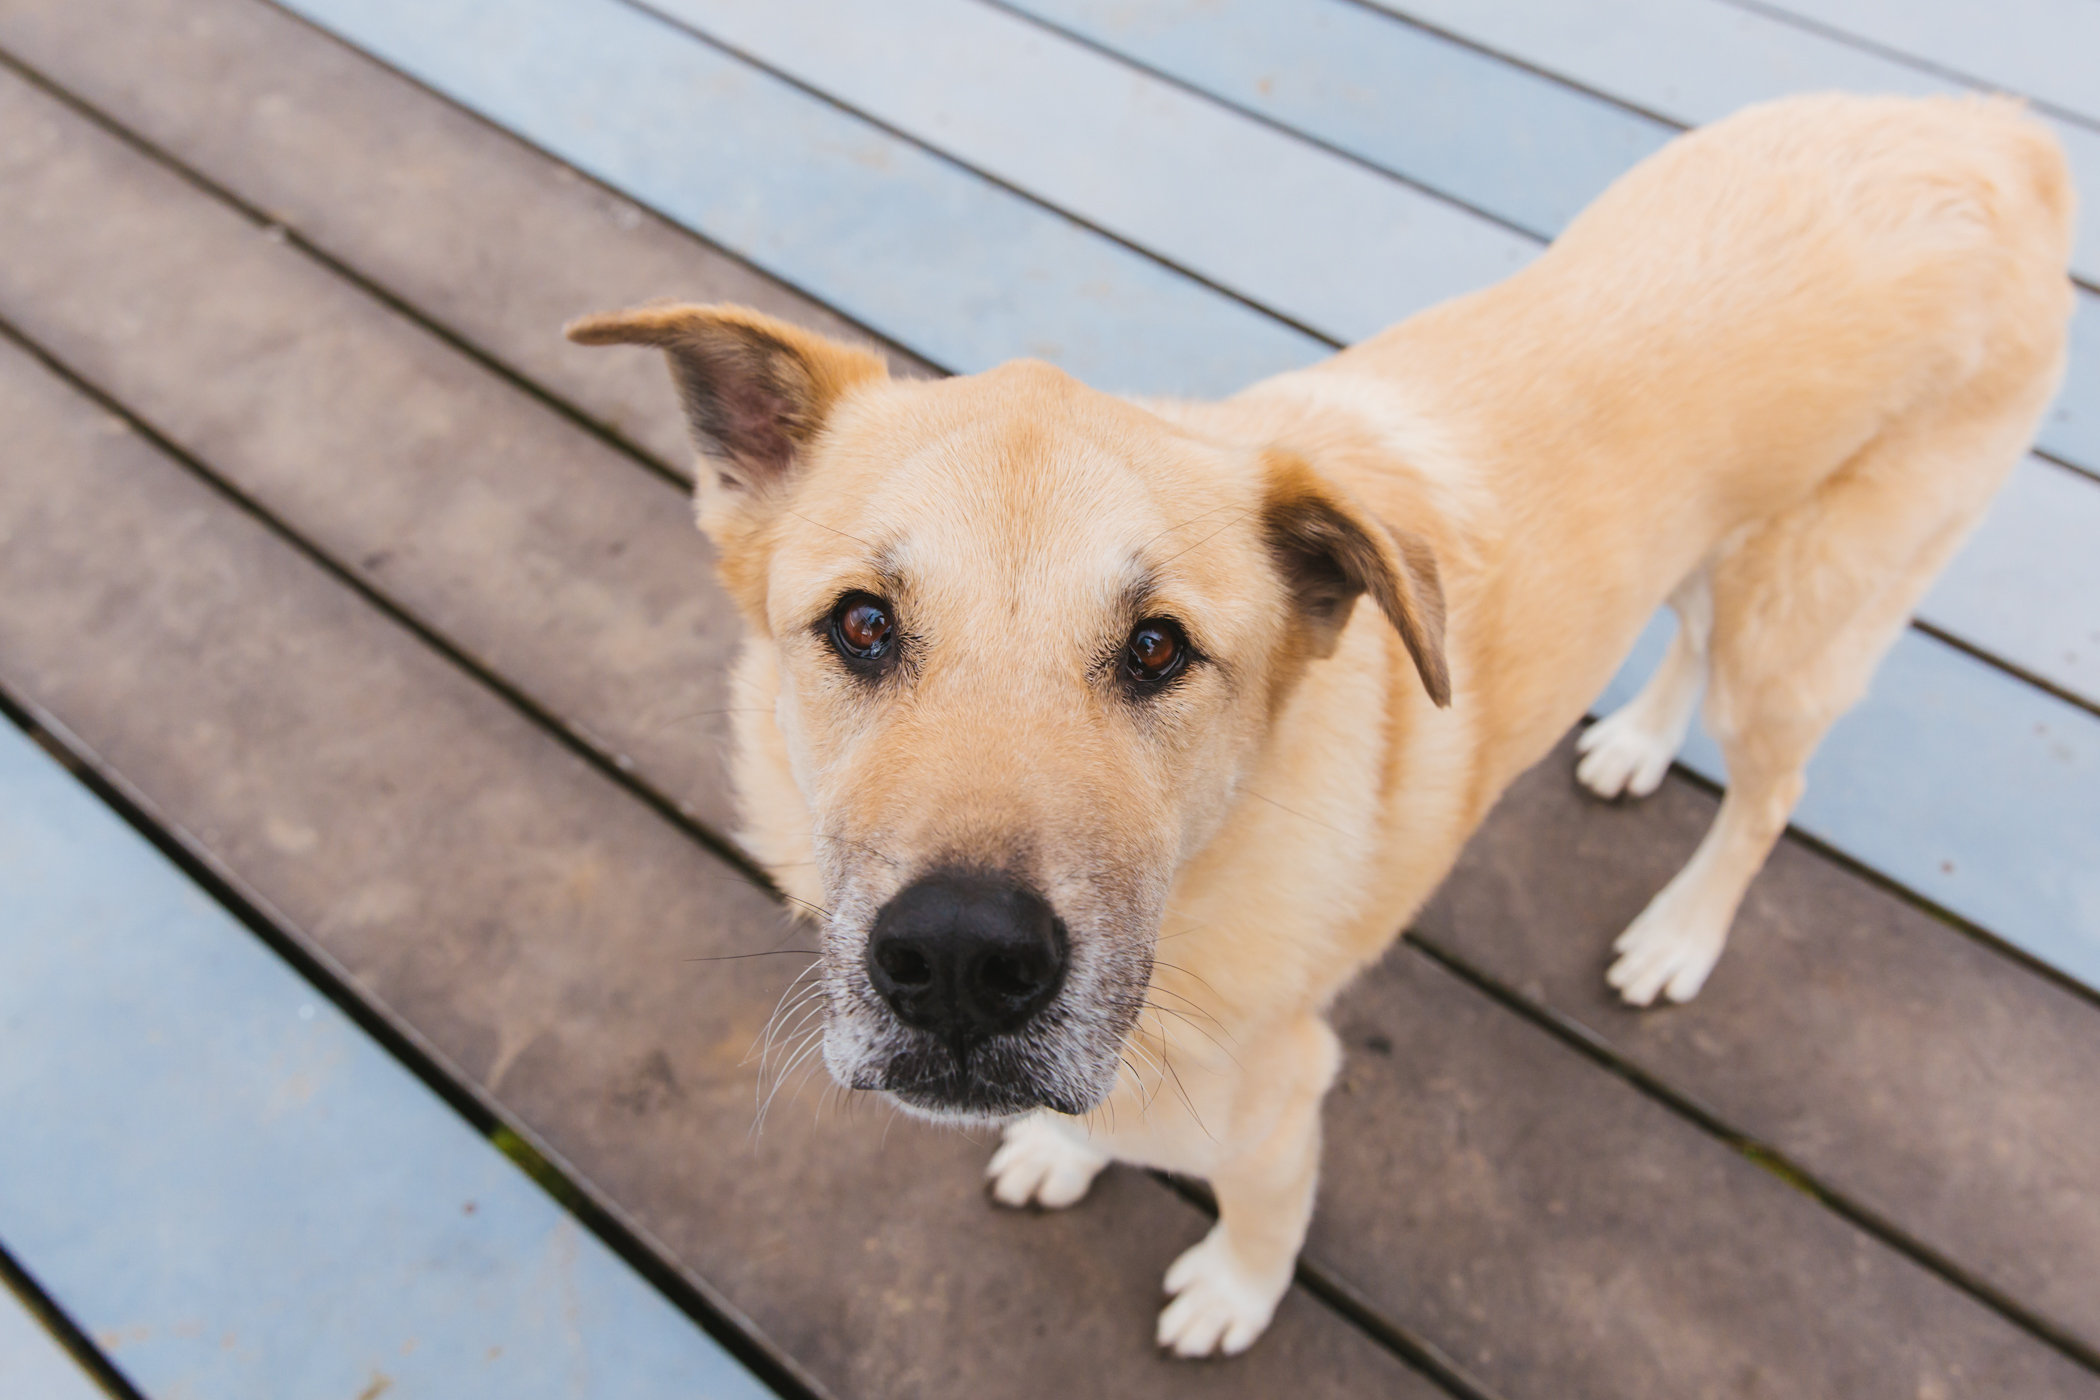 "<p>Tanner is an 11.5 Shepard/Lab/Chow mix who lives in Bothell and has, as his owners say ""a very distinct personality."" He loves going on walks and chewing sticks, and hates the sound of the answering machine.{&nbsp;} You can follow him on IG at{&nbsp;}@<a  href=""https://www.instagram.com/tannerstales/"" target=""_blank"" title=""https://www.instagram.com/tannerstales/"">tannerstales</a>.{&nbsp;}{&nbsp;}<a  href=""http://seattlerefined.com/ruffined"" target=""_blank"" title=""http://seattlerefined.com/ruffined"">The RUFFined Spotlight</a>{&nbsp;}is a weekly profile of local pets living and loving life in the PNW. If you or someone you know has a pet you'd like featured, email us at{&nbsp;}<a  href=""mailto:hello@seattlerefined.com"" target=""_blank"" title=""mailto:hello@seattlerefined.com"">hello@seattlerefined.com</a>, and your furbaby could be the next spotlighted! (Image: Sunita Martini / Seattle Refined)</p>"